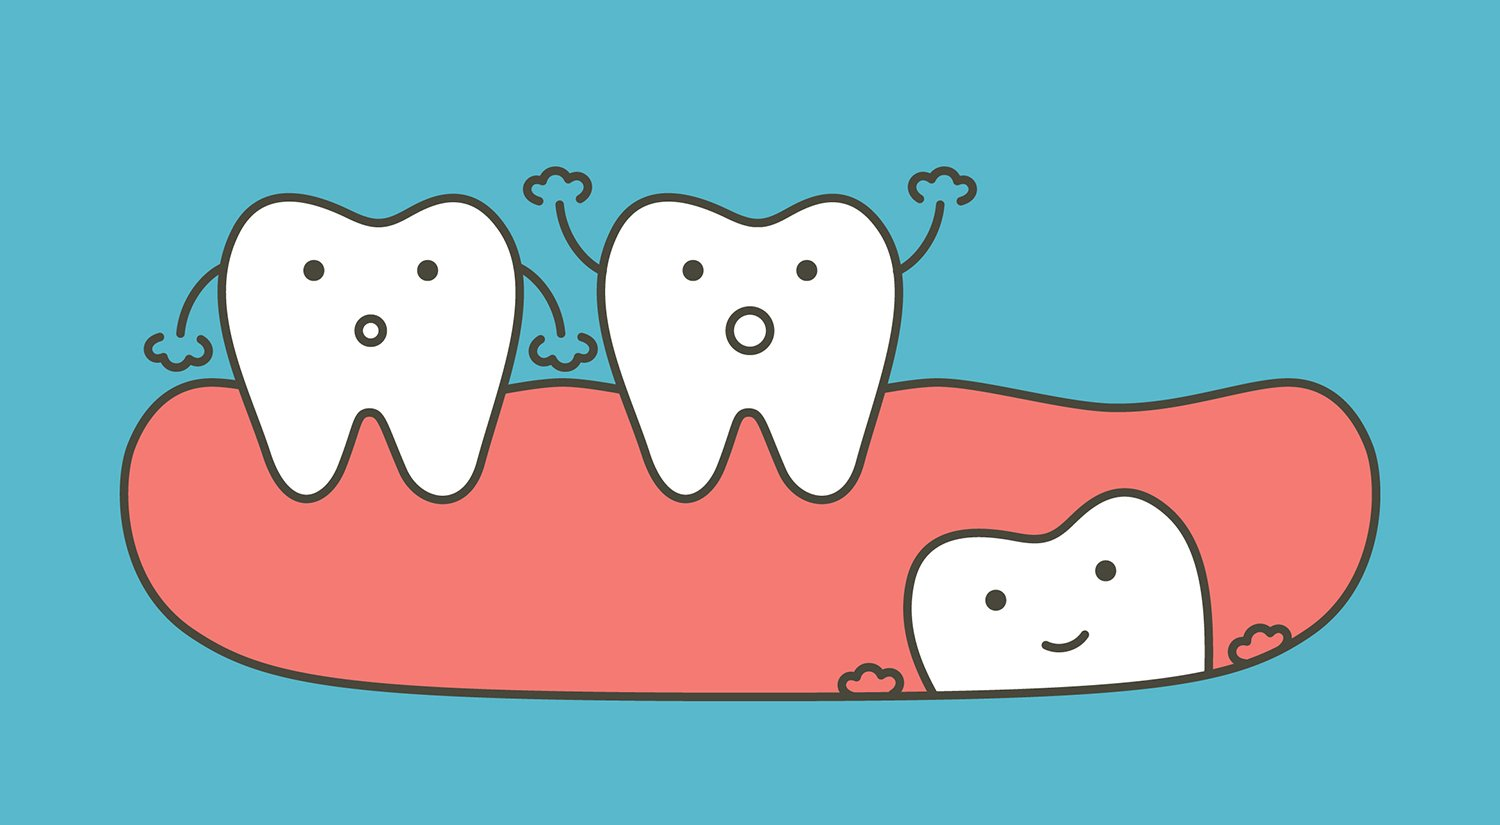 Wisdom tooth clipart png black and white Wisdom Teeth Removal: Know Before You Go - Ask the Dentist png black and white